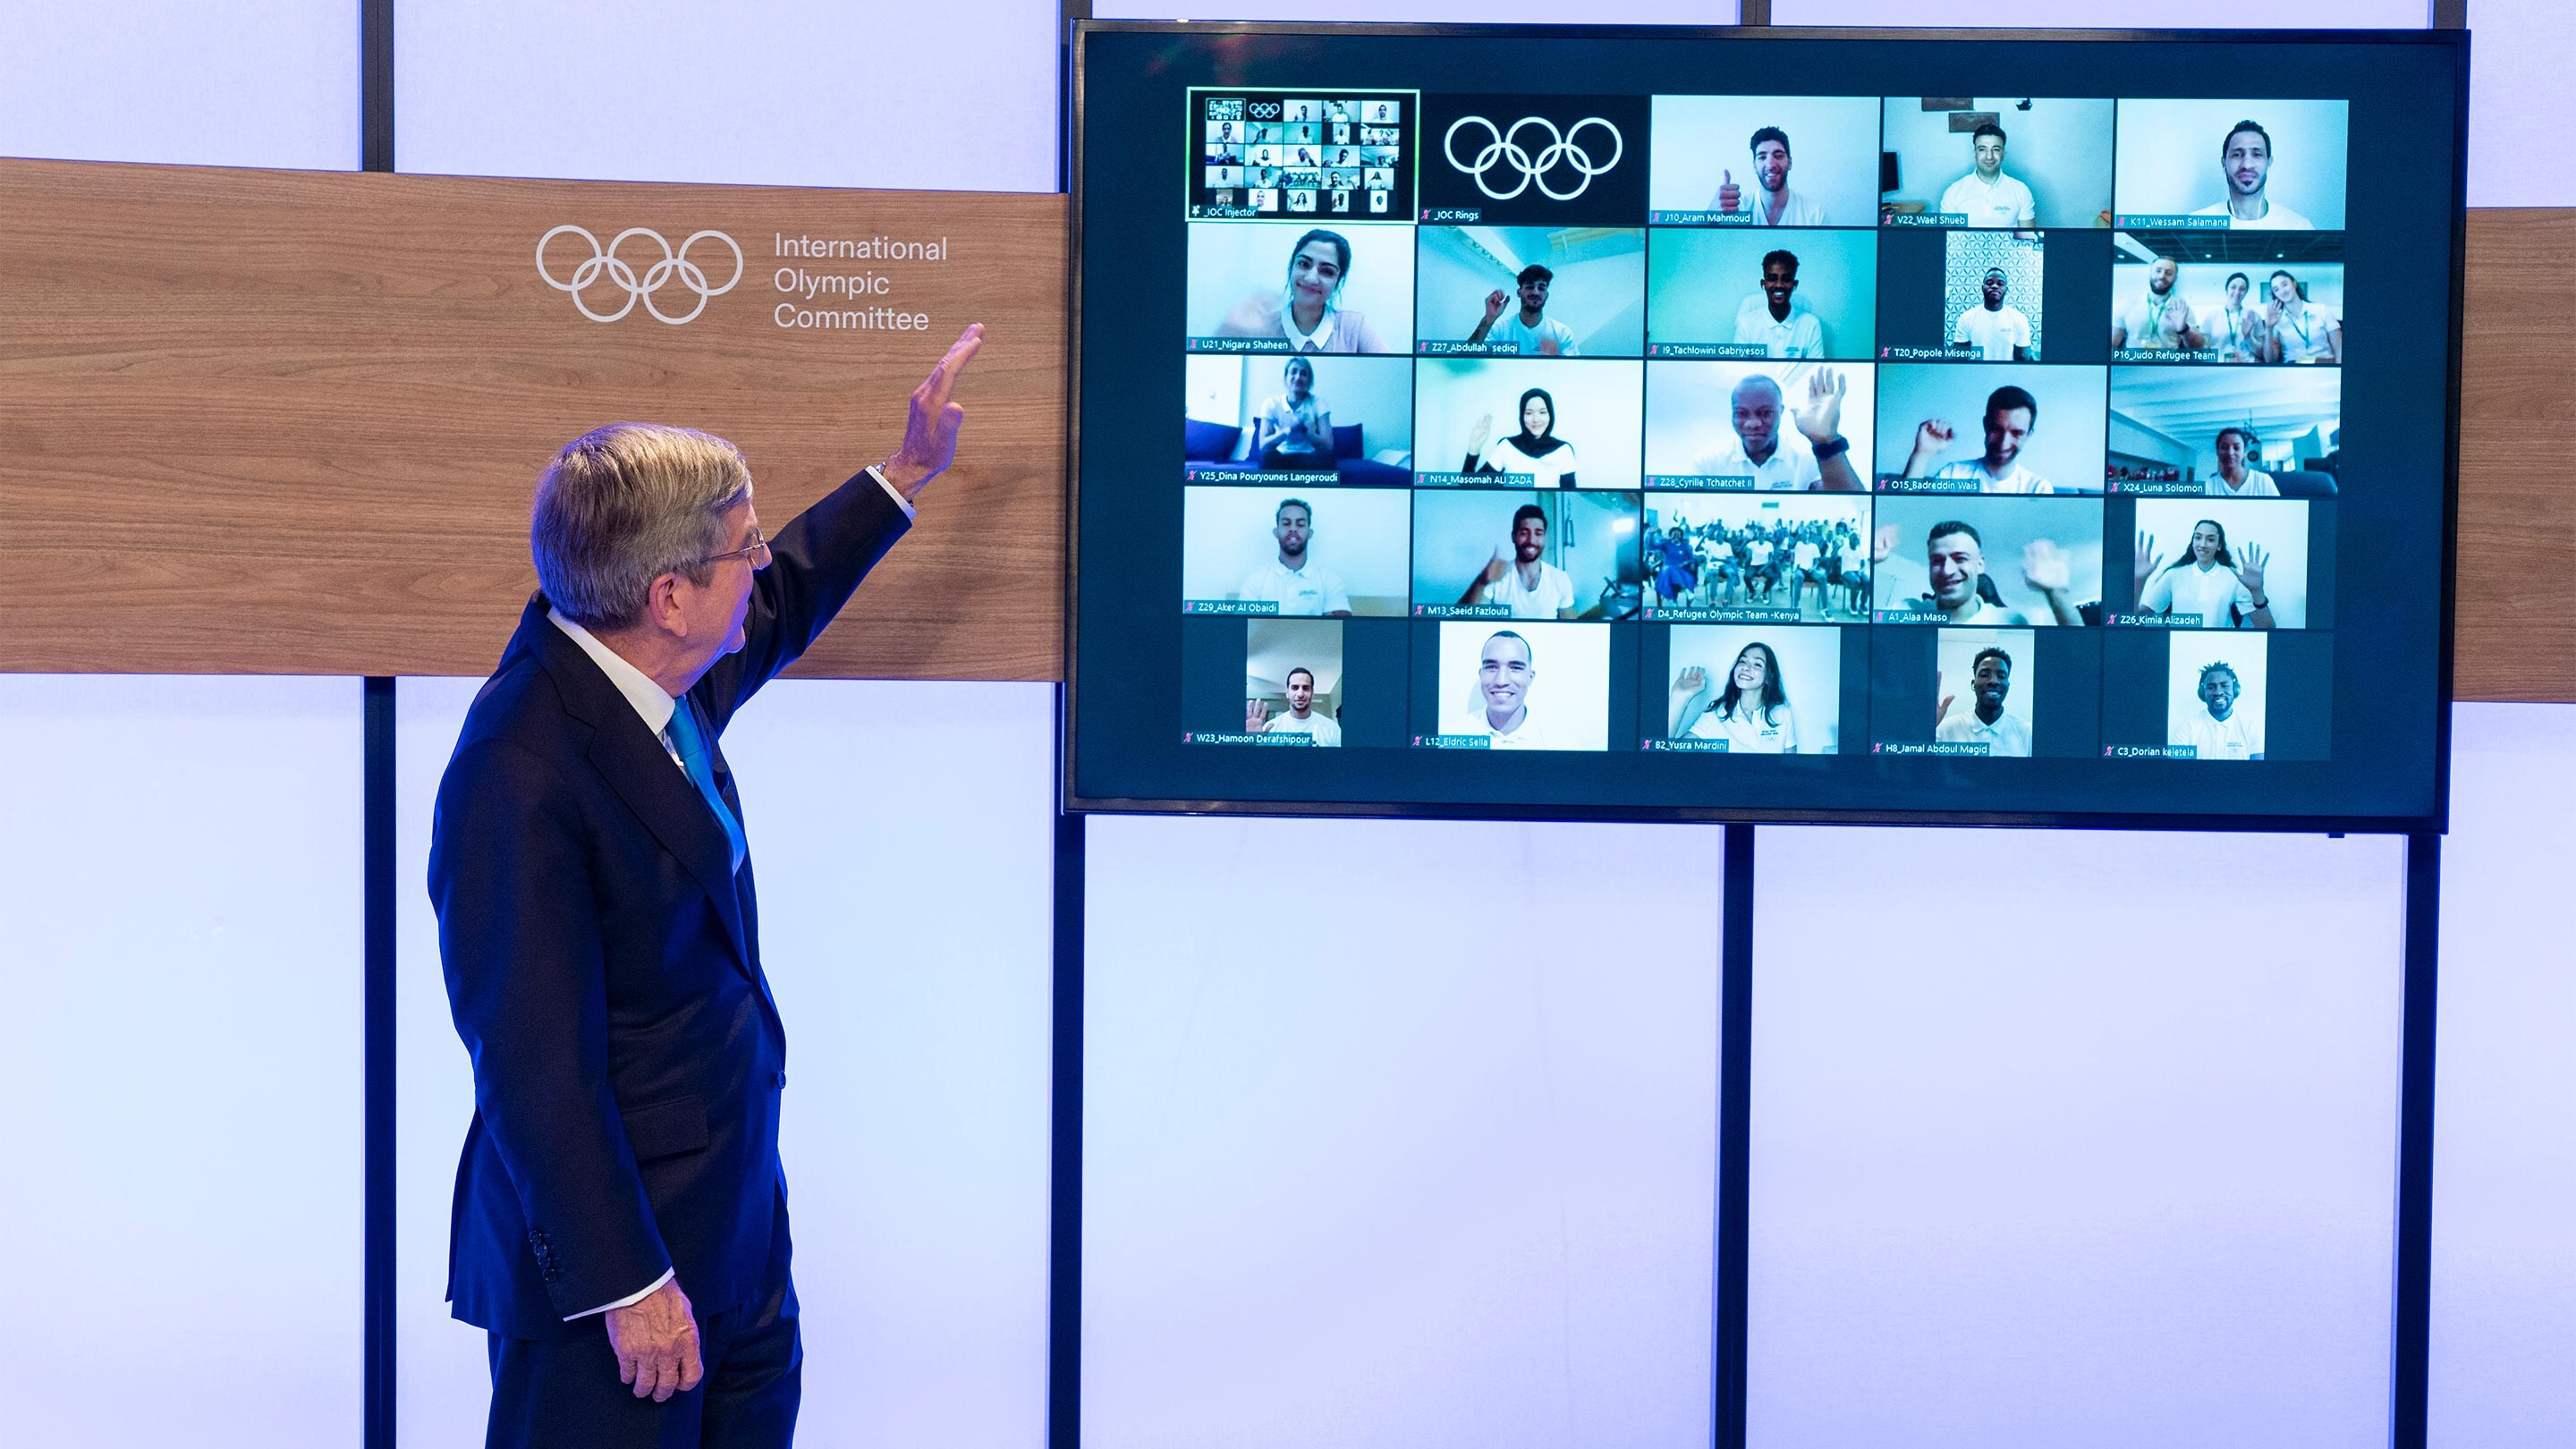 IOC Refugee Olympic Team for Tokyo 2020 Olympic Games announced